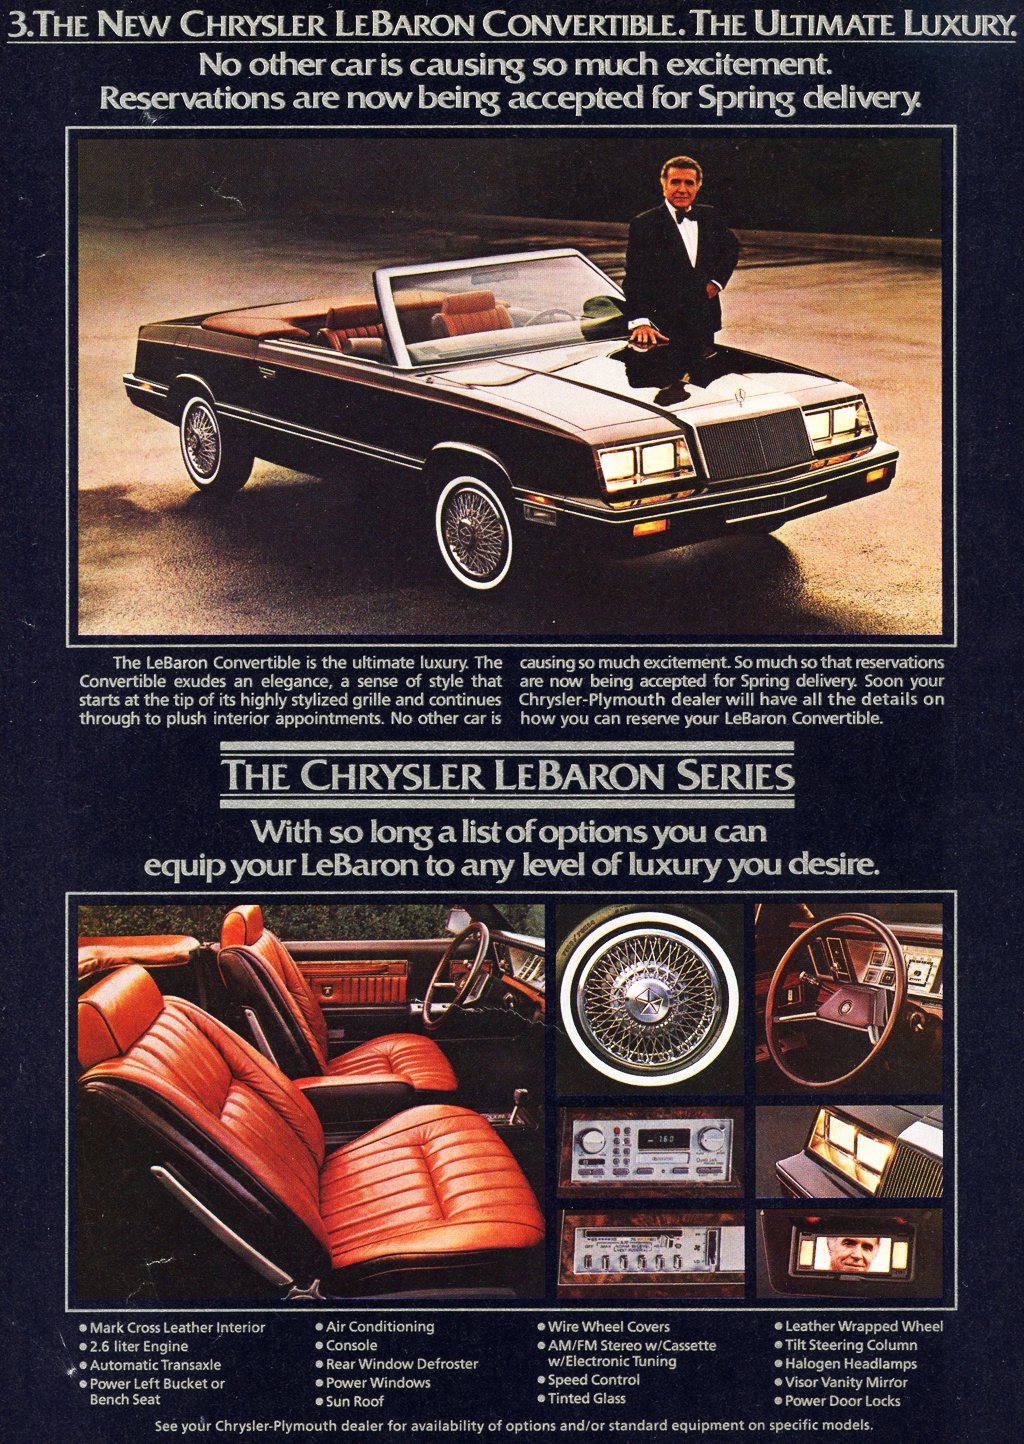 "Chrysler LeBaron convertibles were introduced late in 1981 as '82 models.  ""Reservations are now being taken for spring delivery"" as the text quotes.  There was no Town & Country version for 1982."